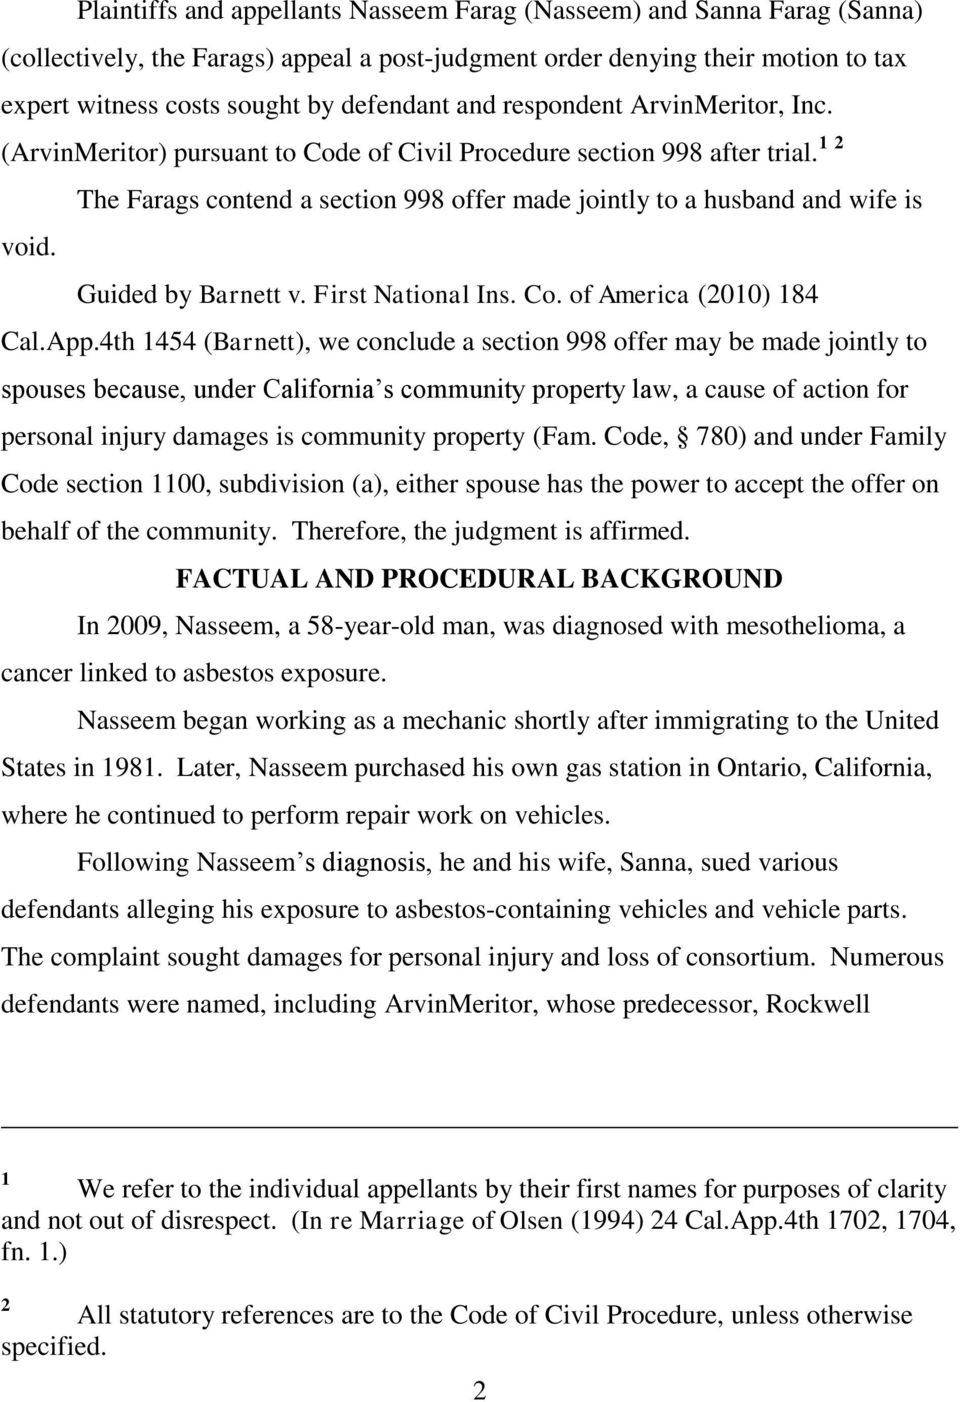 Guided by Barnett v. First National Ins. Co. of America (2010) 184 Cal.App.